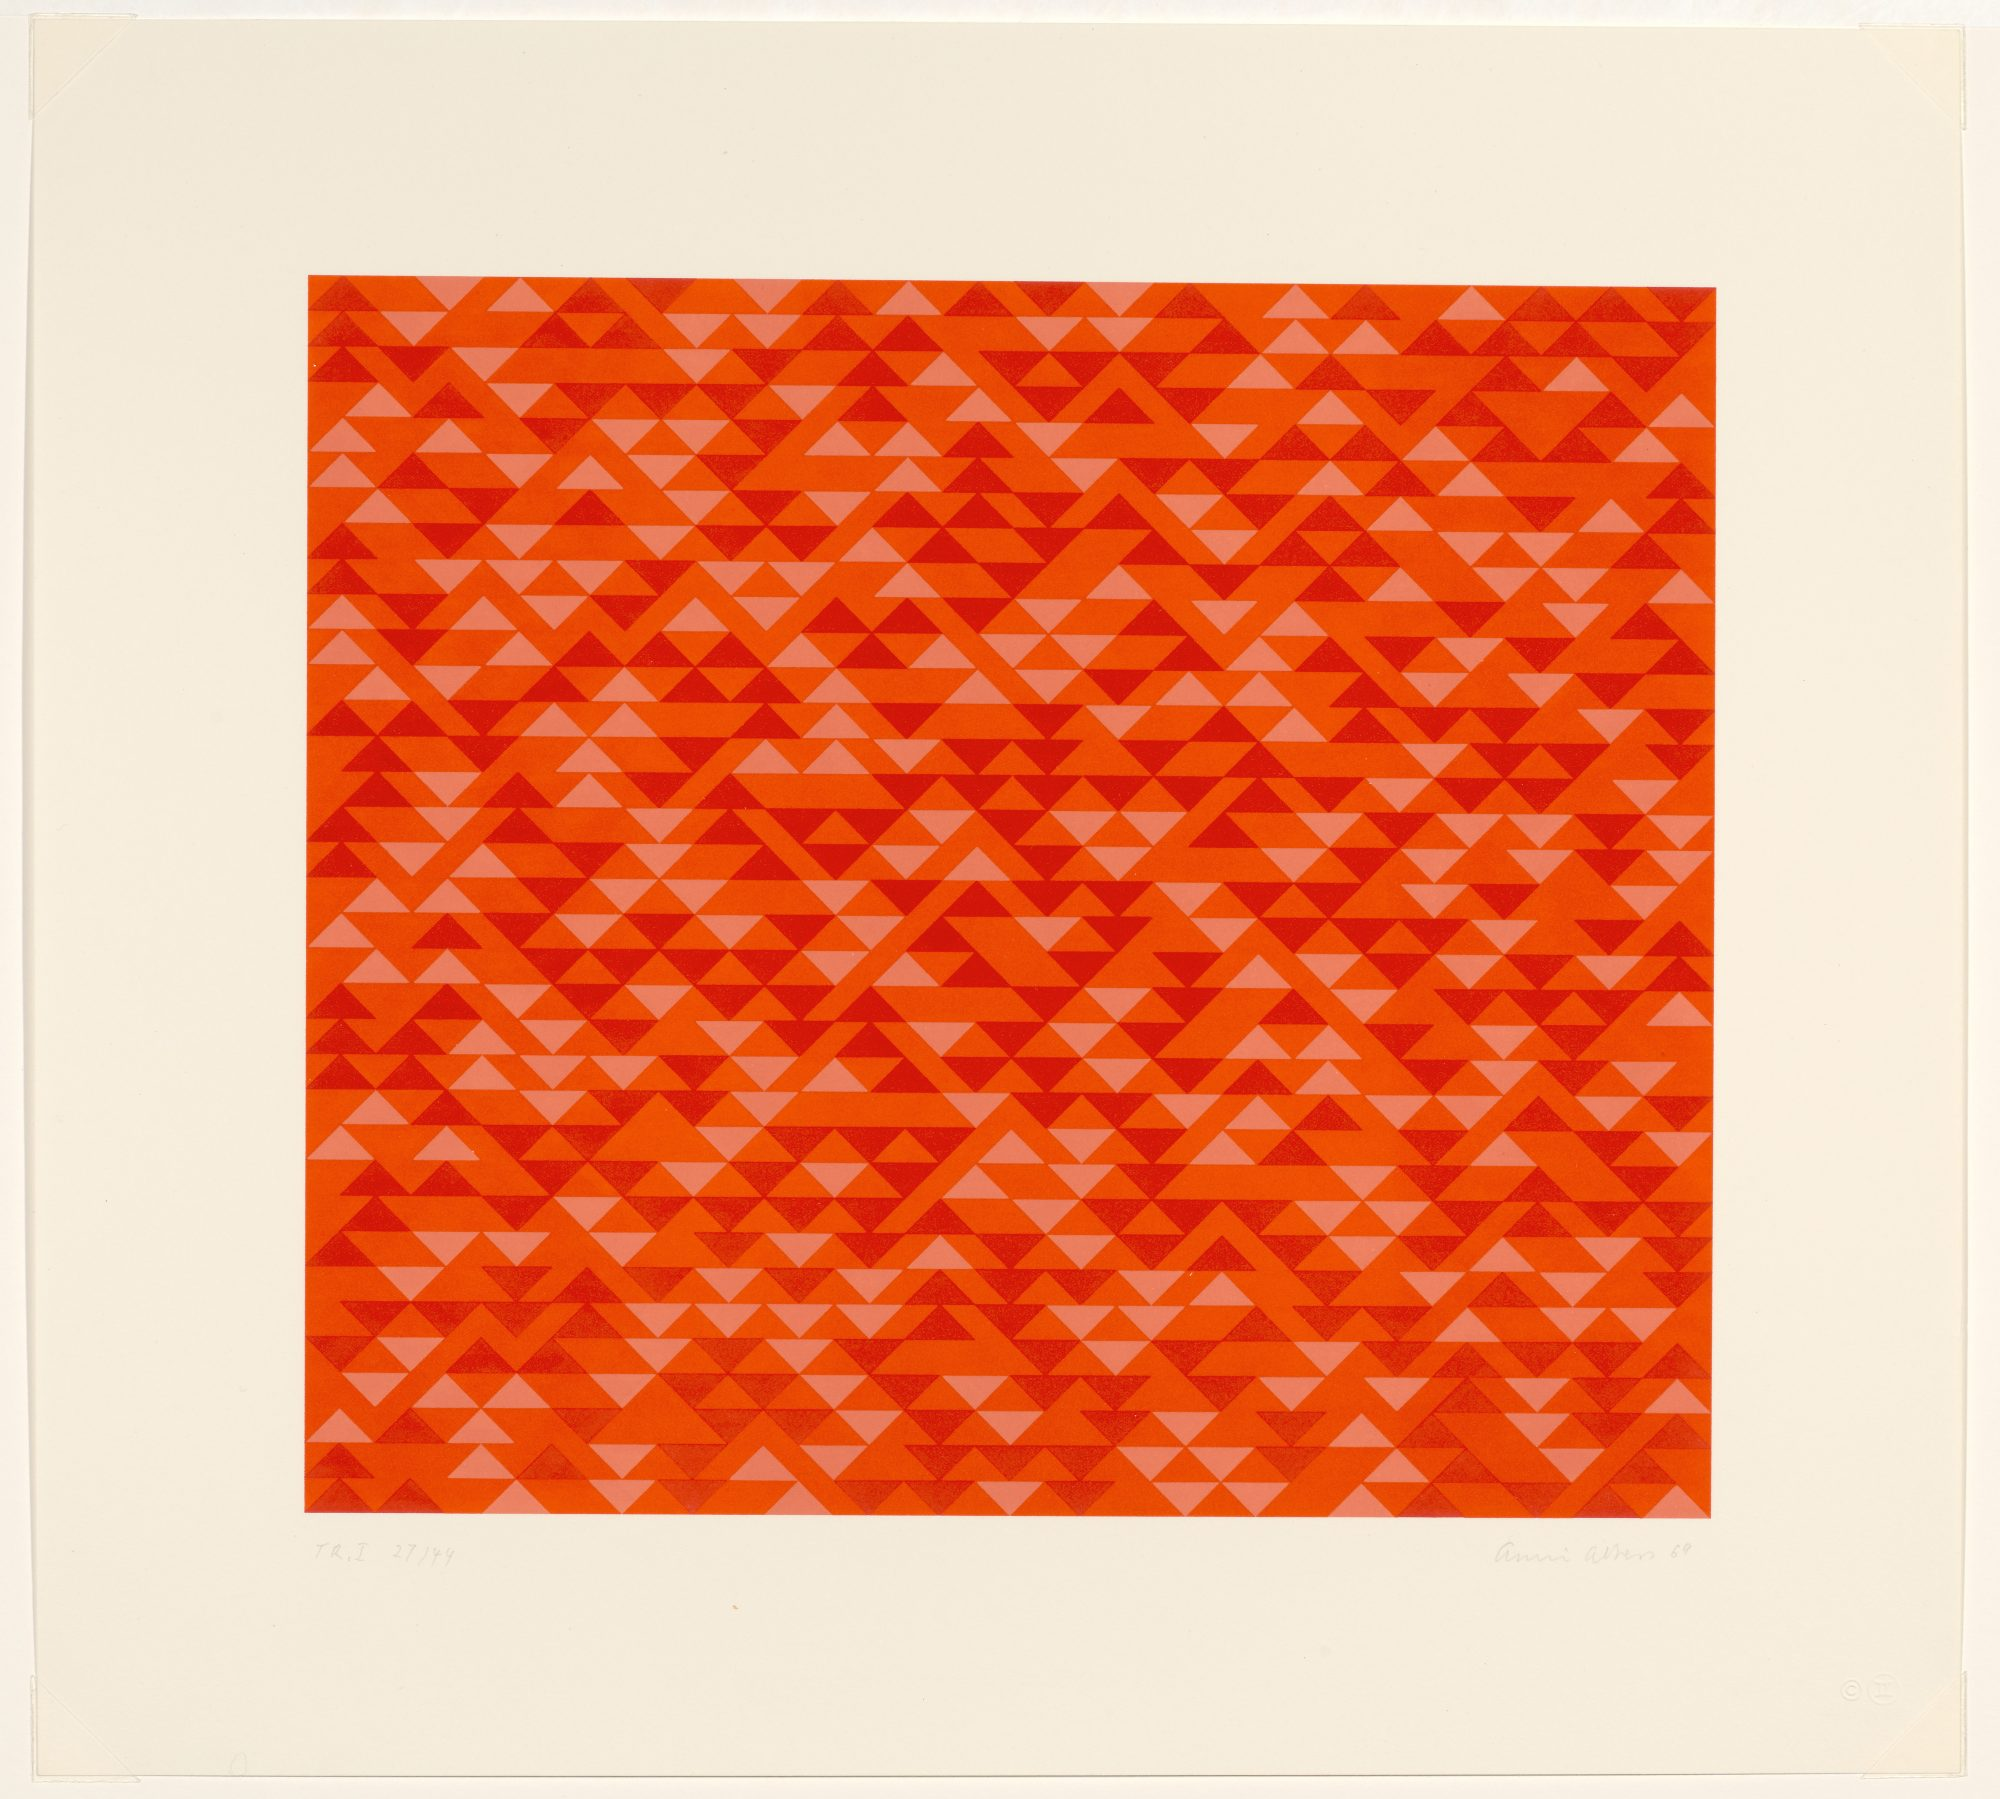 Anni Albers, TR I, 1969. Color lithograph on paper, 14 x 15 15/16 in. Gift of Frederick M. Myers, Class of 1943. 81.46.1